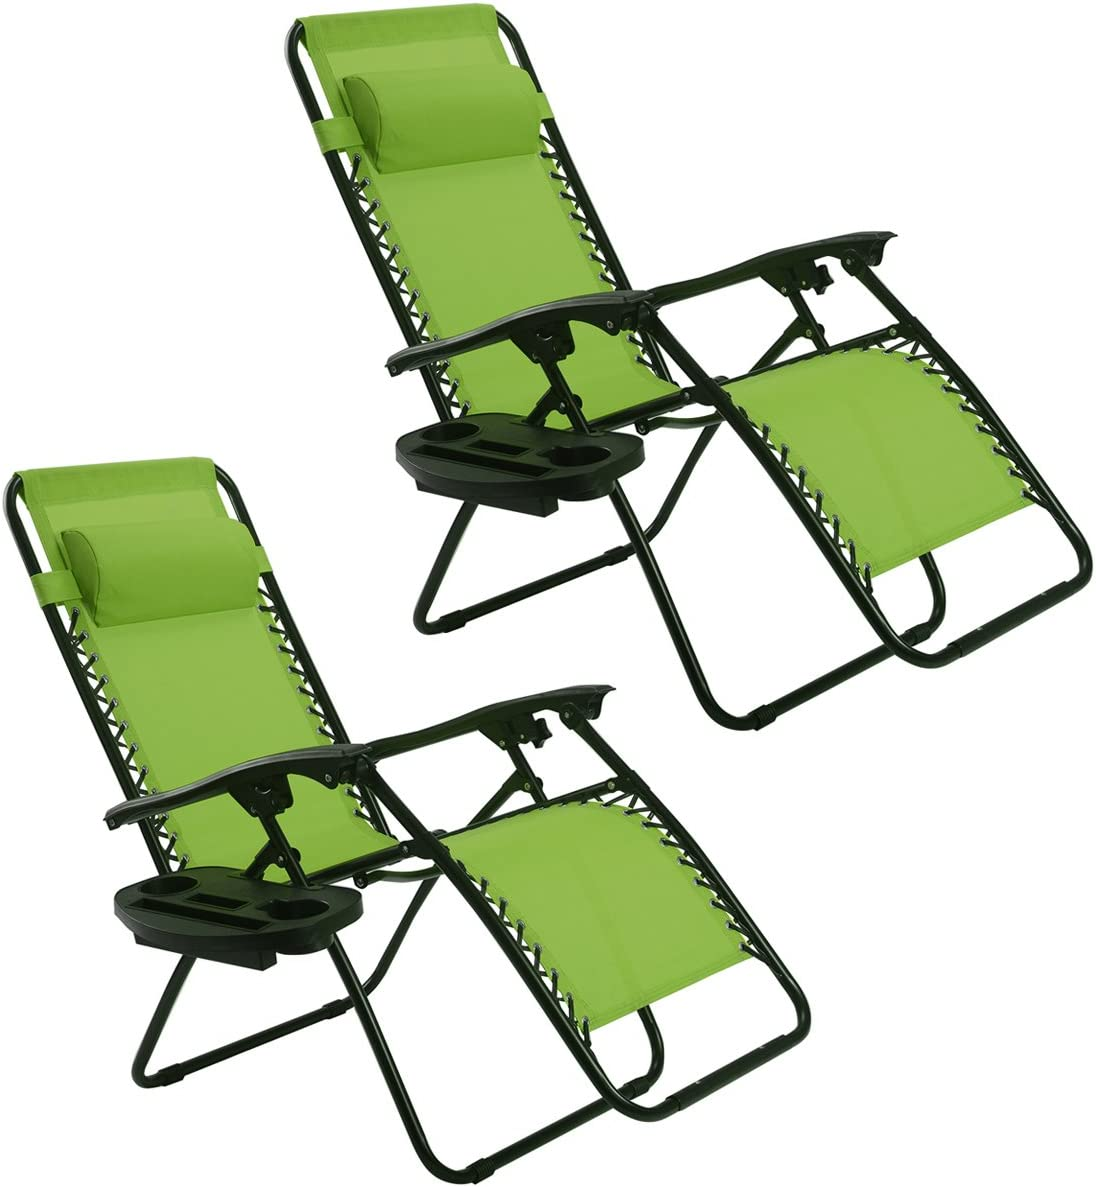 Goplus Zero Gravity Chairs, Lounge Patio, Folding Recliner, Outdoor Yard Beach with Cup Holder, Green, 2 Piece